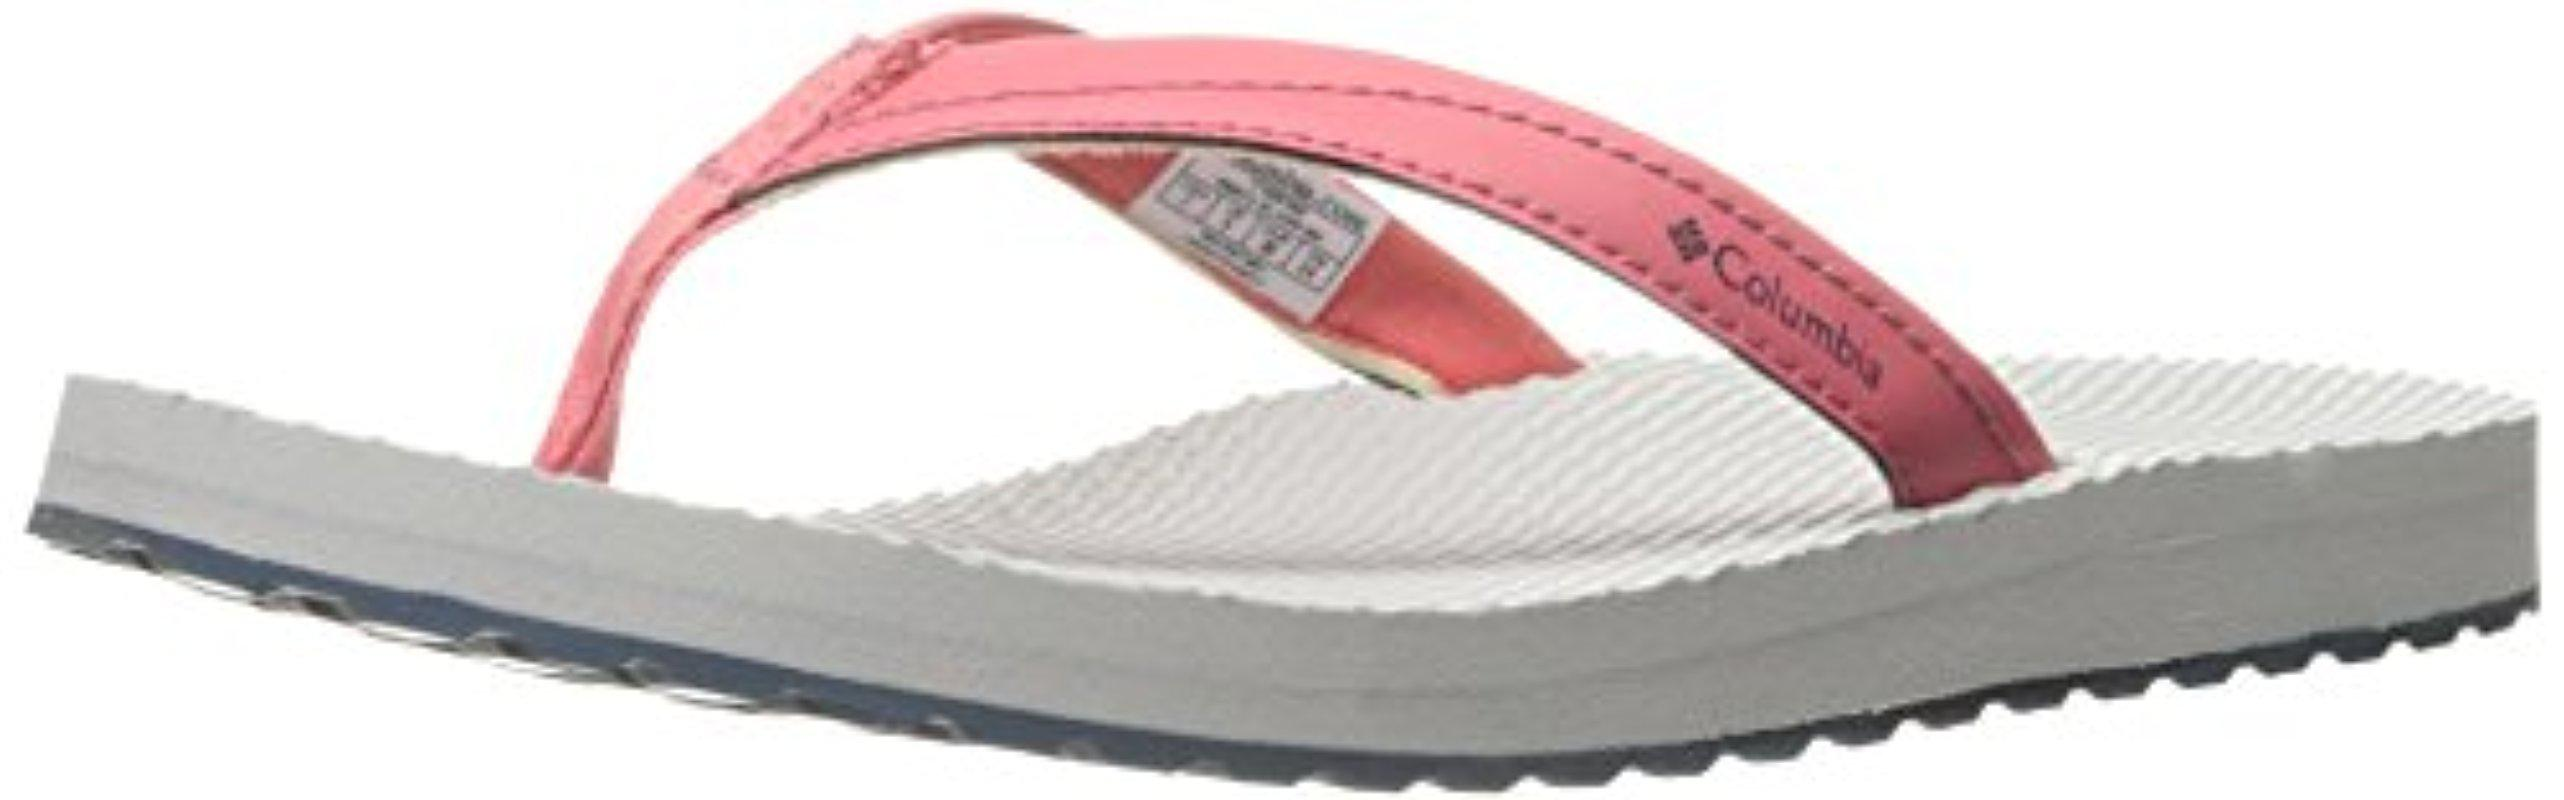 Women's Sorrento Flip Athletic Sandal